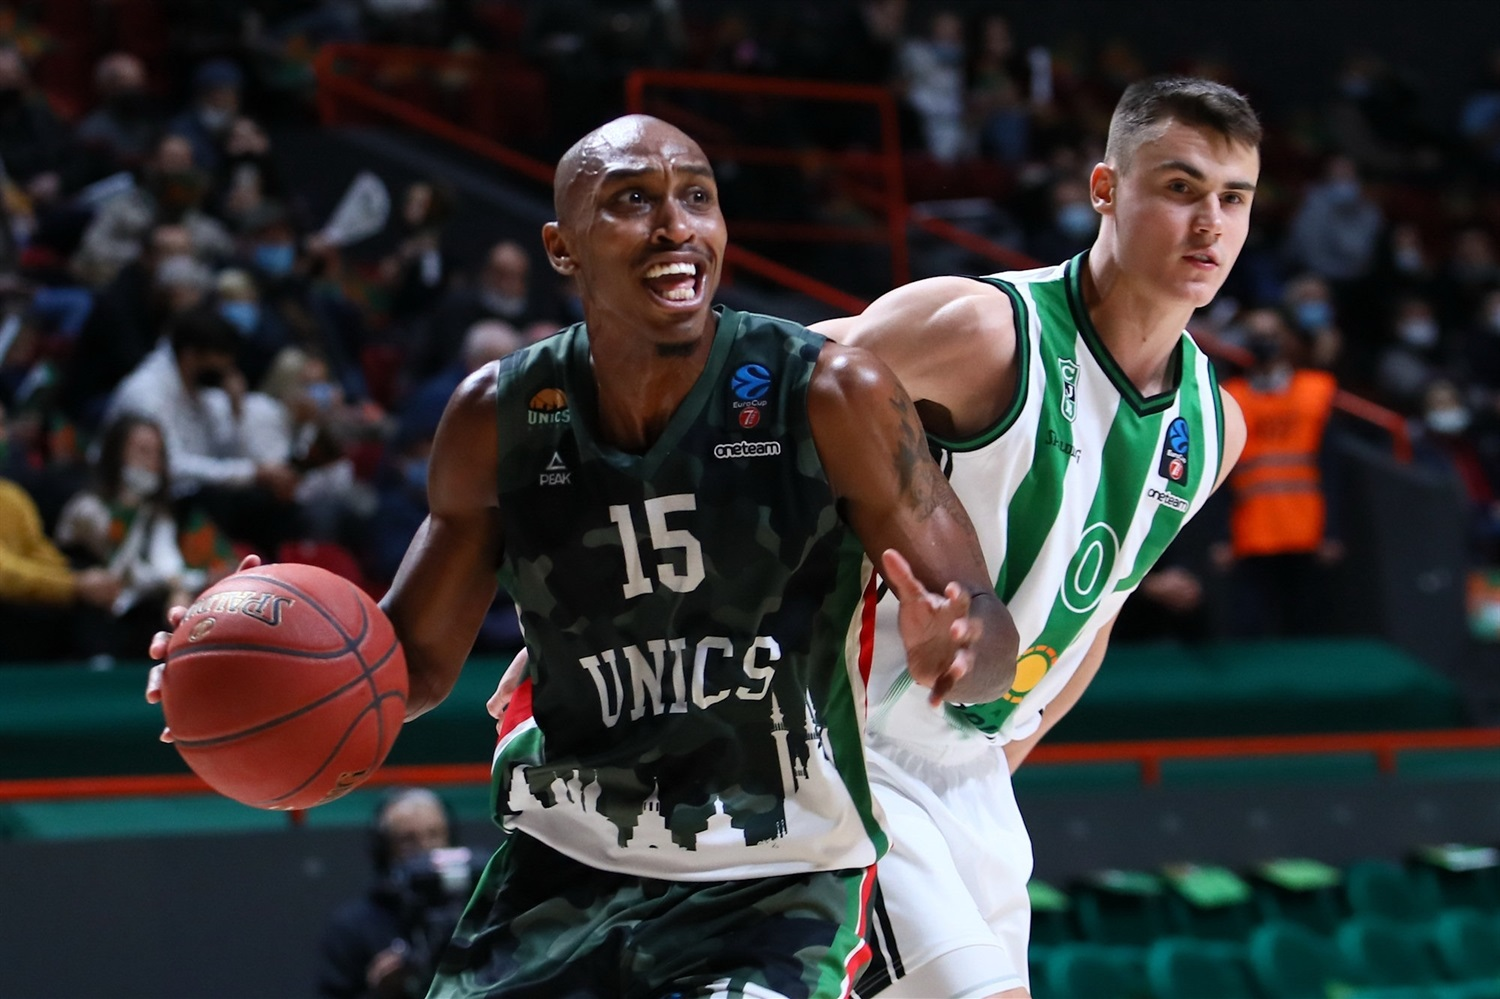 Jamar Smith - UNICS Kazan (photo UNICS - Kseniya Bogdanova) - EC20